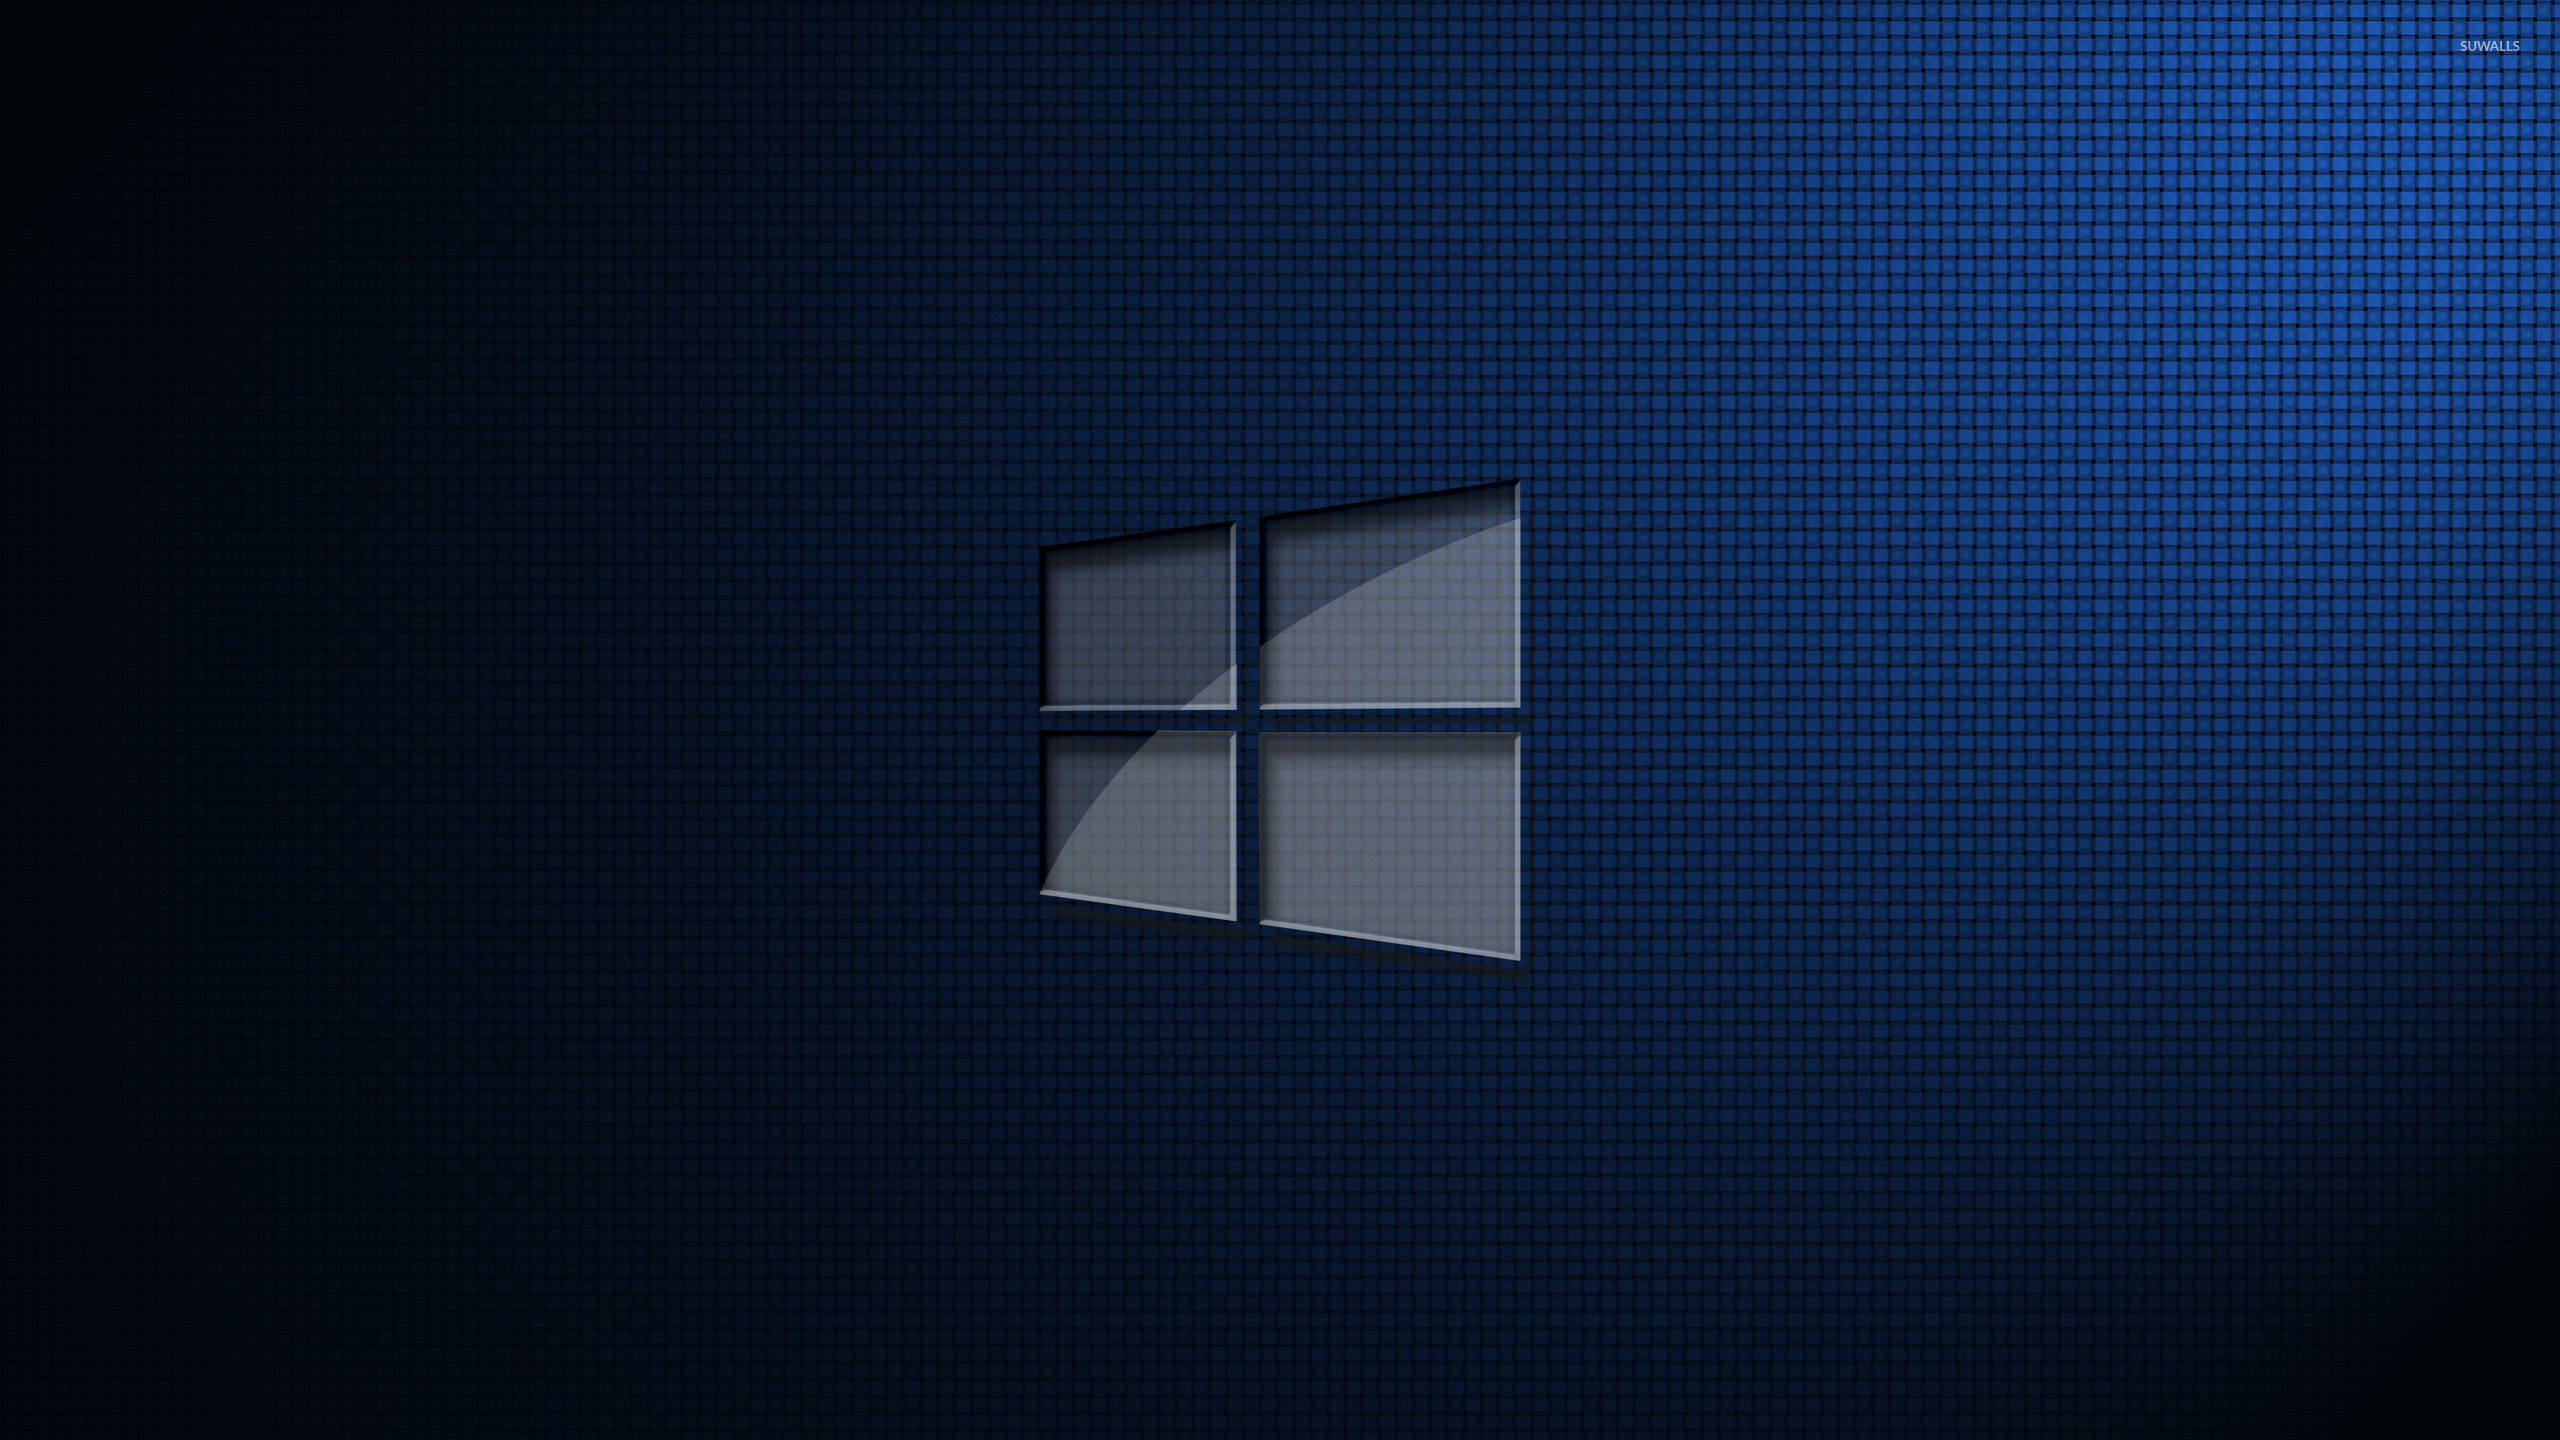 Glass windows 10 on square pattern wallpaper computer for Window 10 wallpaper